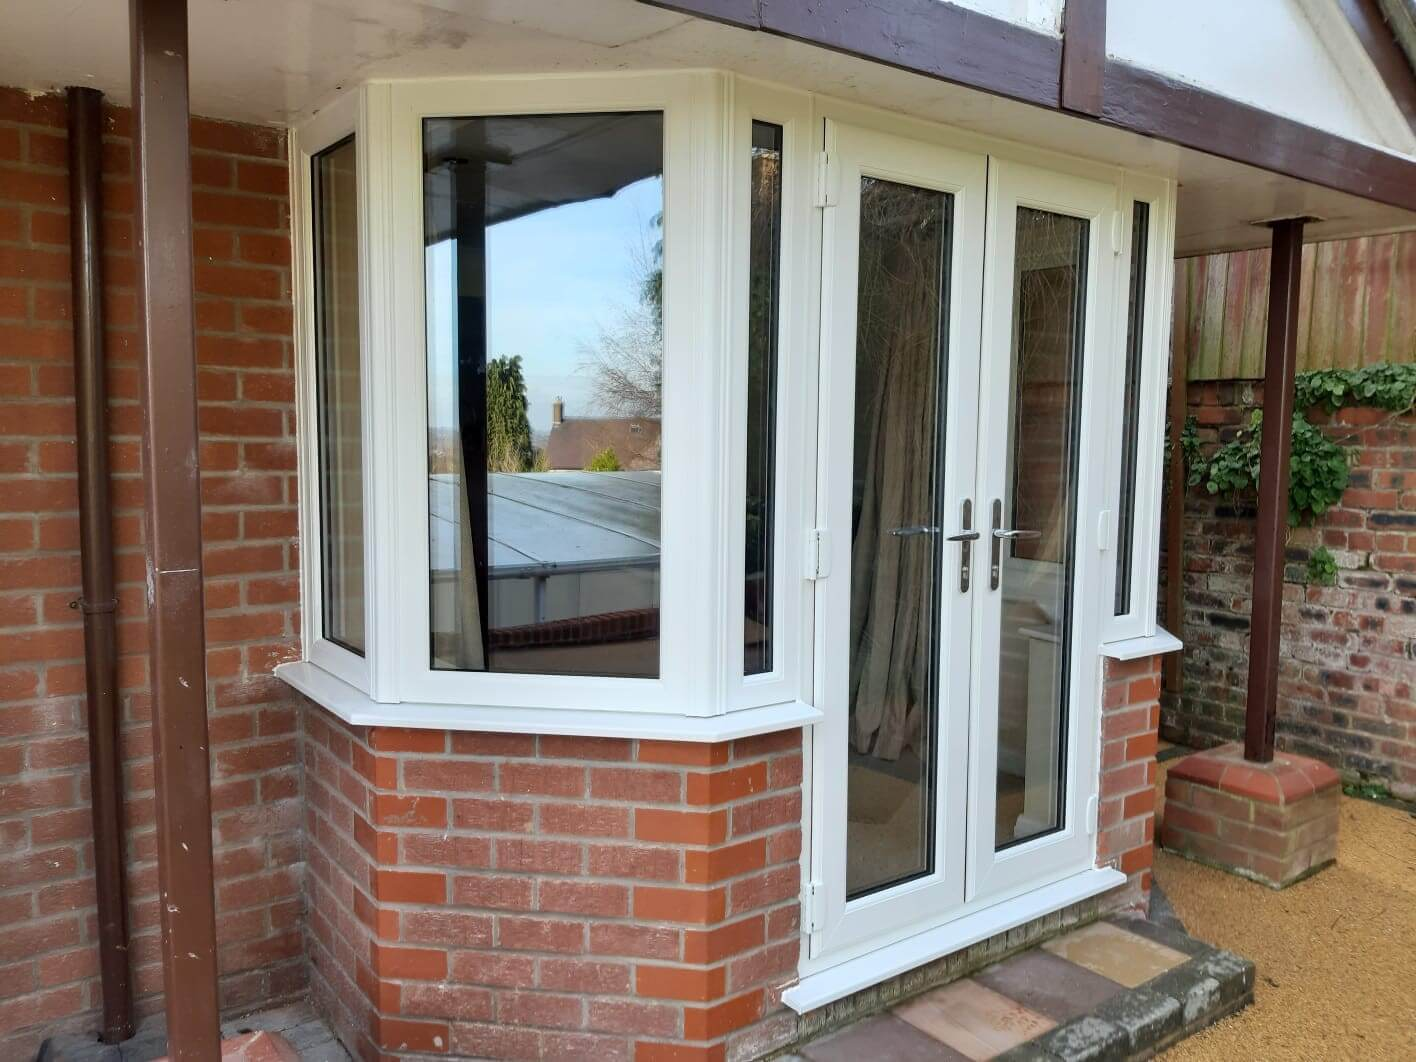 This image shows a bay window with aluminium frames in white with a French patio door.